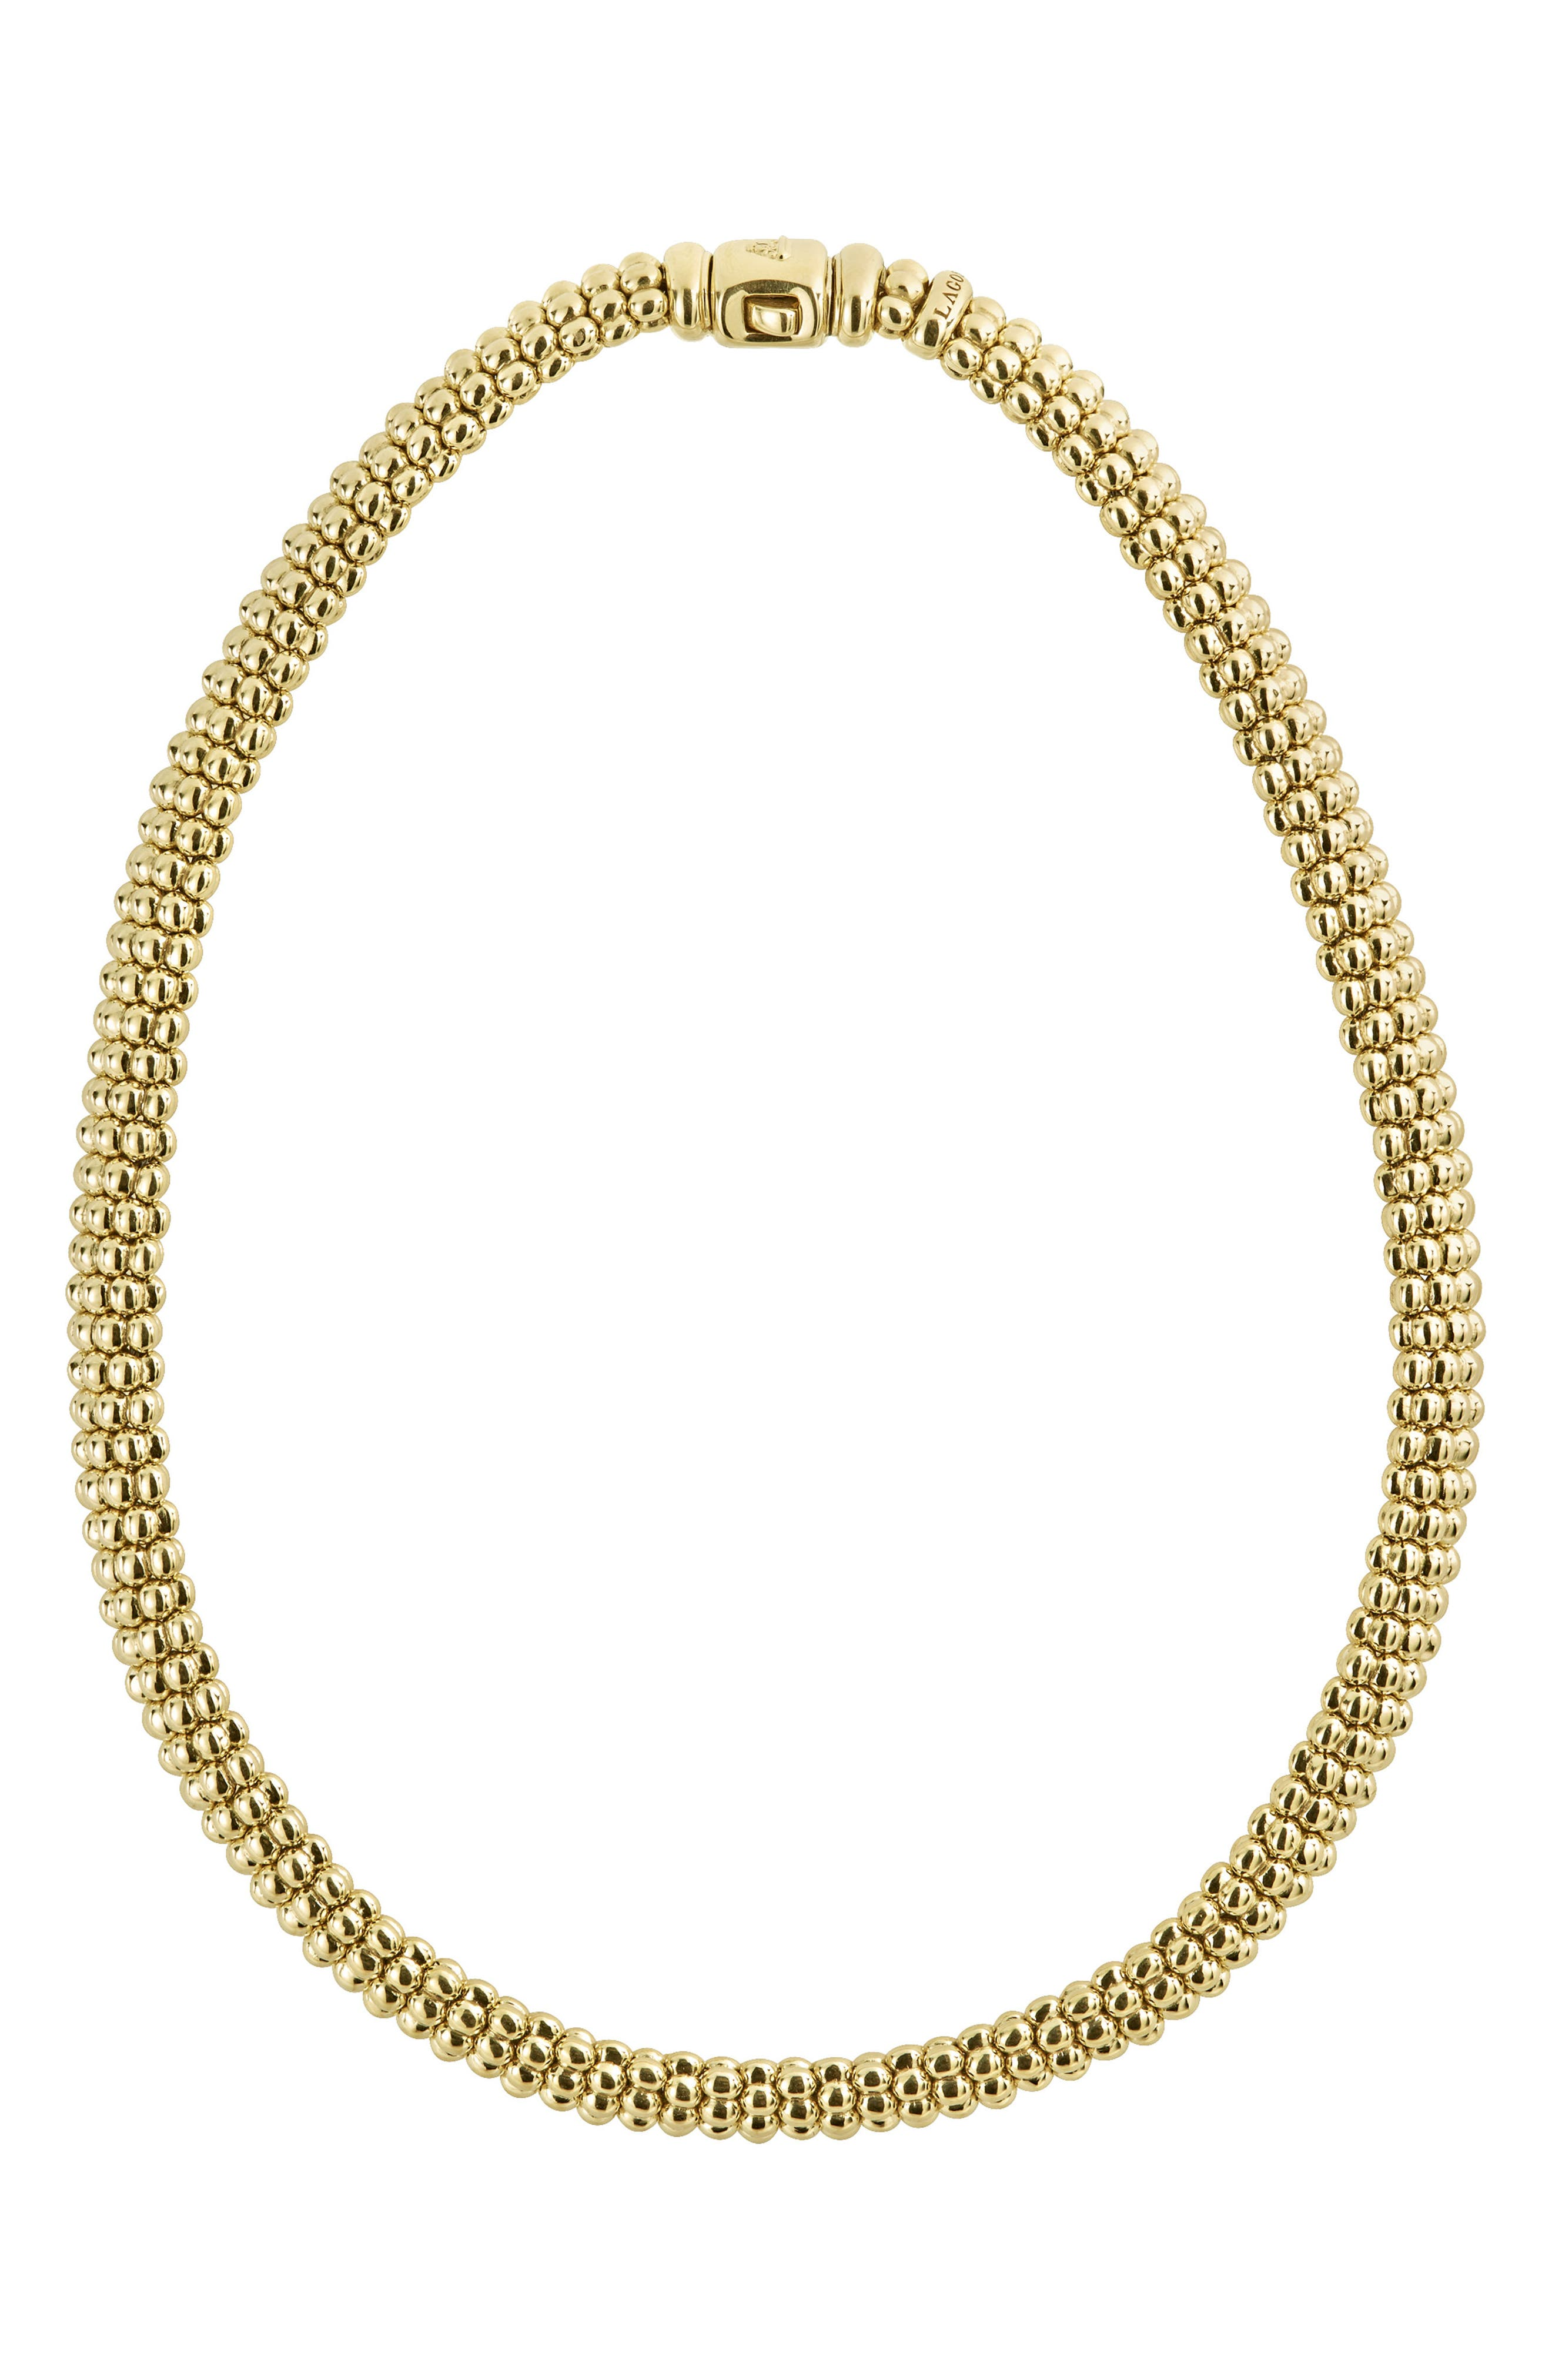 Caviar Gold Rope Necklace,                         Main,                         color, GOLD